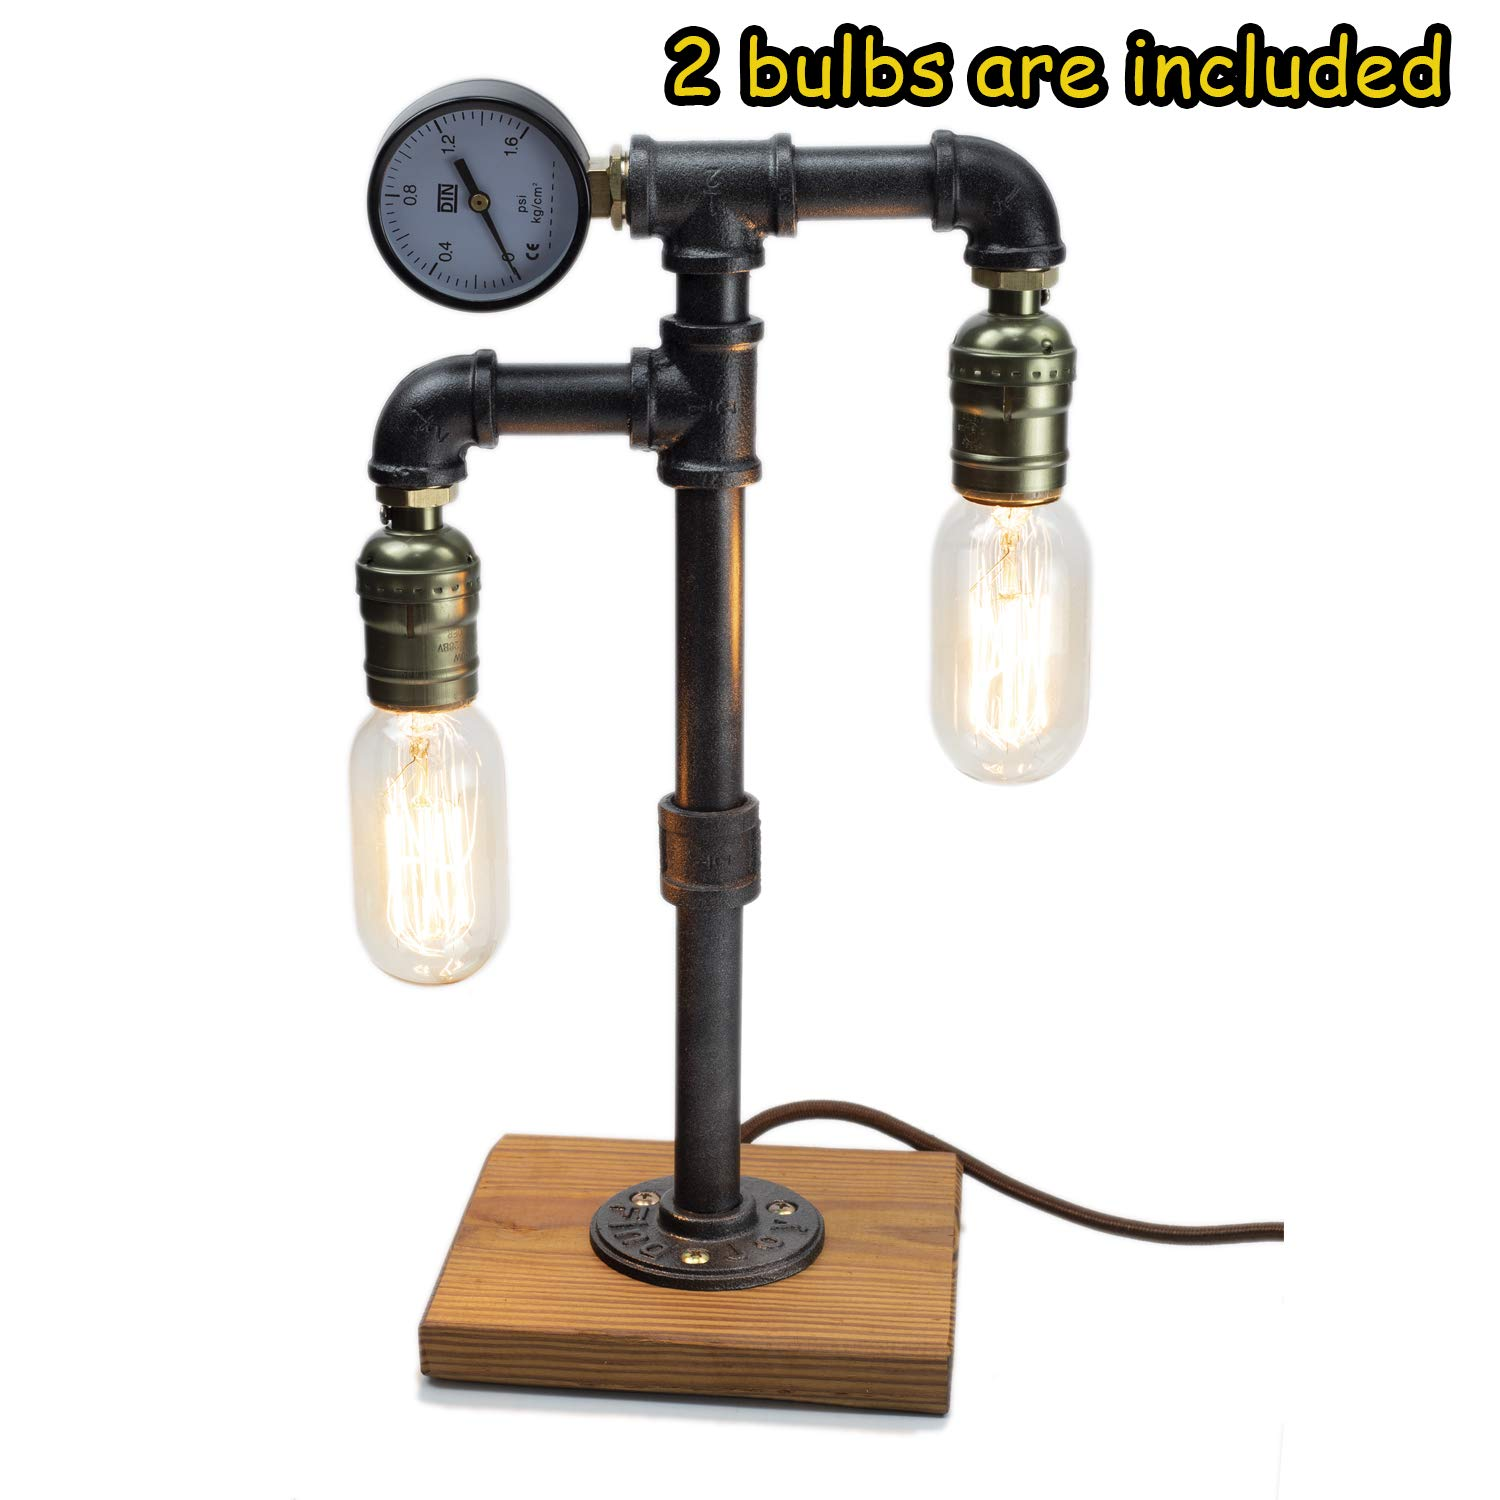 Steampunk Lamp with Dimmer, Dimmable Loft Style Industrial Vintage Antique Style Light with 2 Bulbs, Wood Base with Iron Piping Desk Lamp, Retro Desk Lamp LL-026